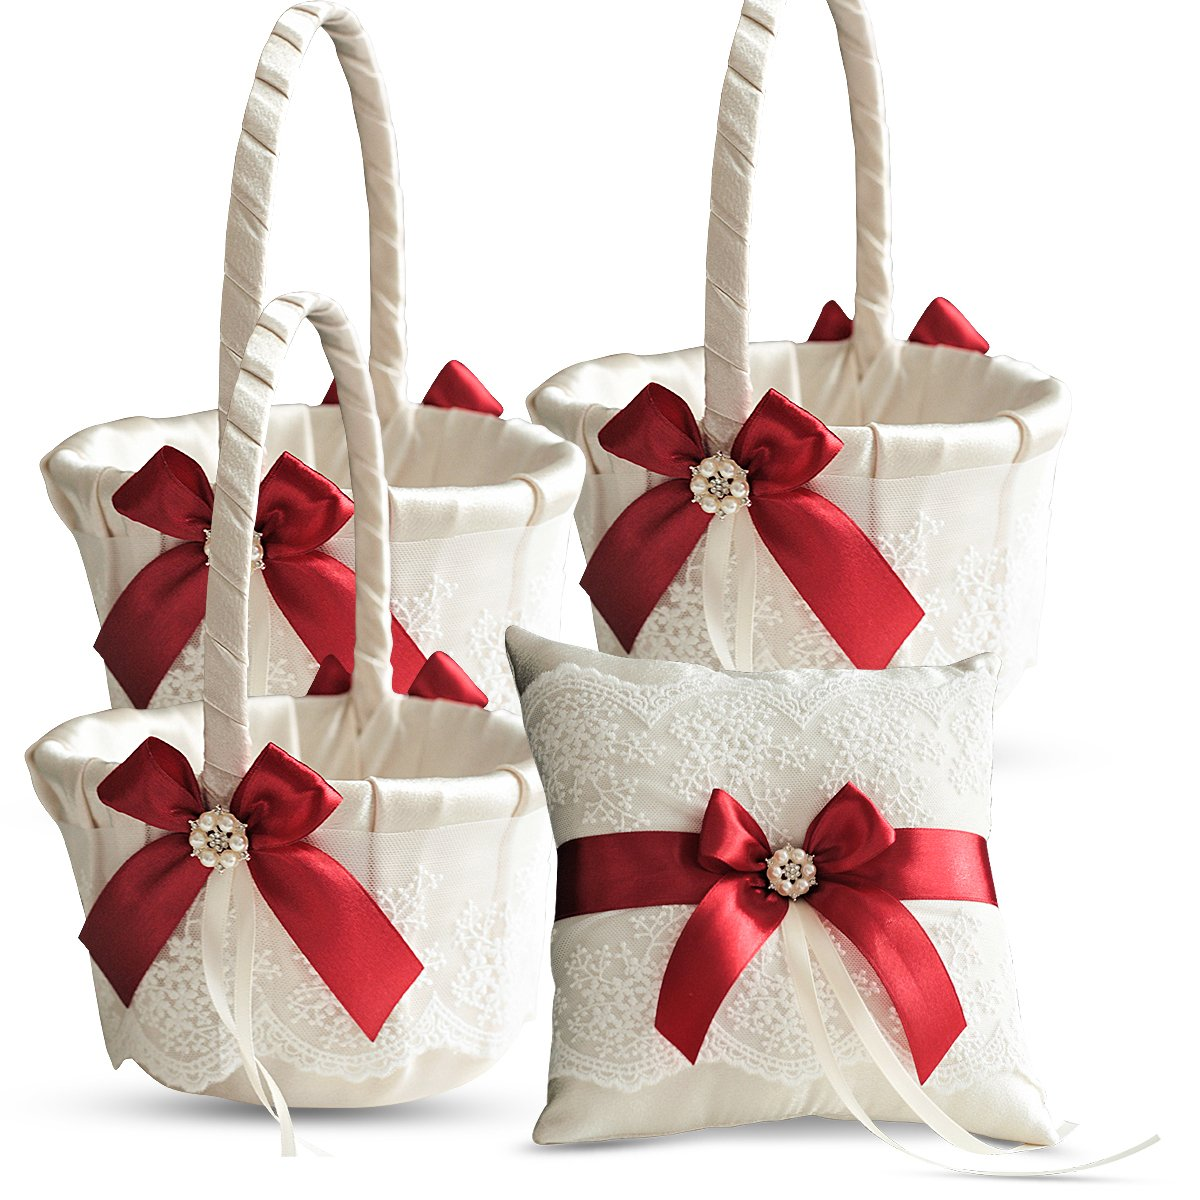 Roman Store Ivory Ring Bearer Pillow and Basket Set | Lace Collection | Flower Girl & Welcome Basket for Guest | Handmade Wedding Baskets & Pillows (RED)